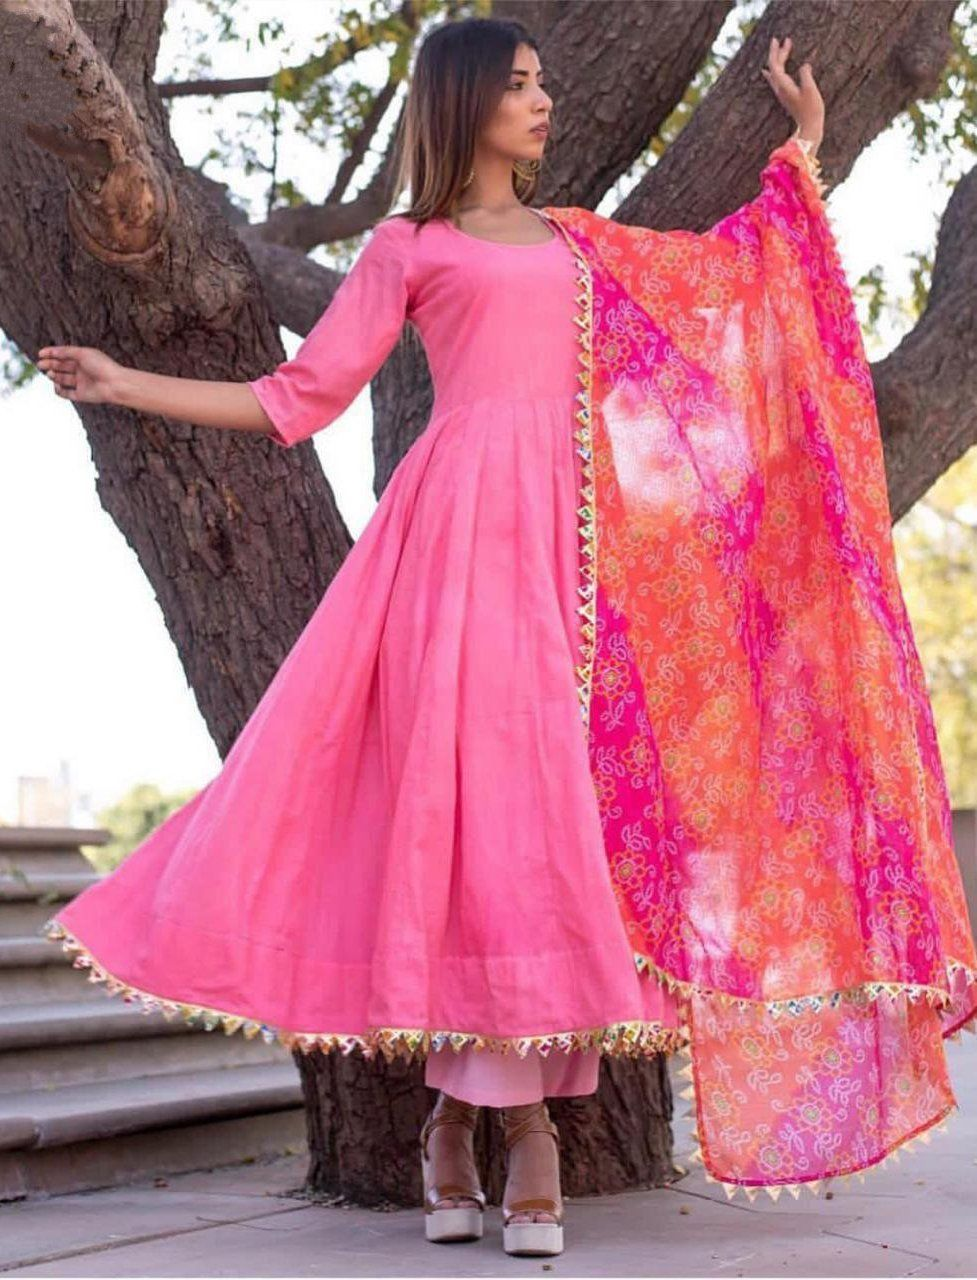 Readymade New Anarkali Suit Party Wear Stylish Pink Cotton Top Plazo Bottom Dres